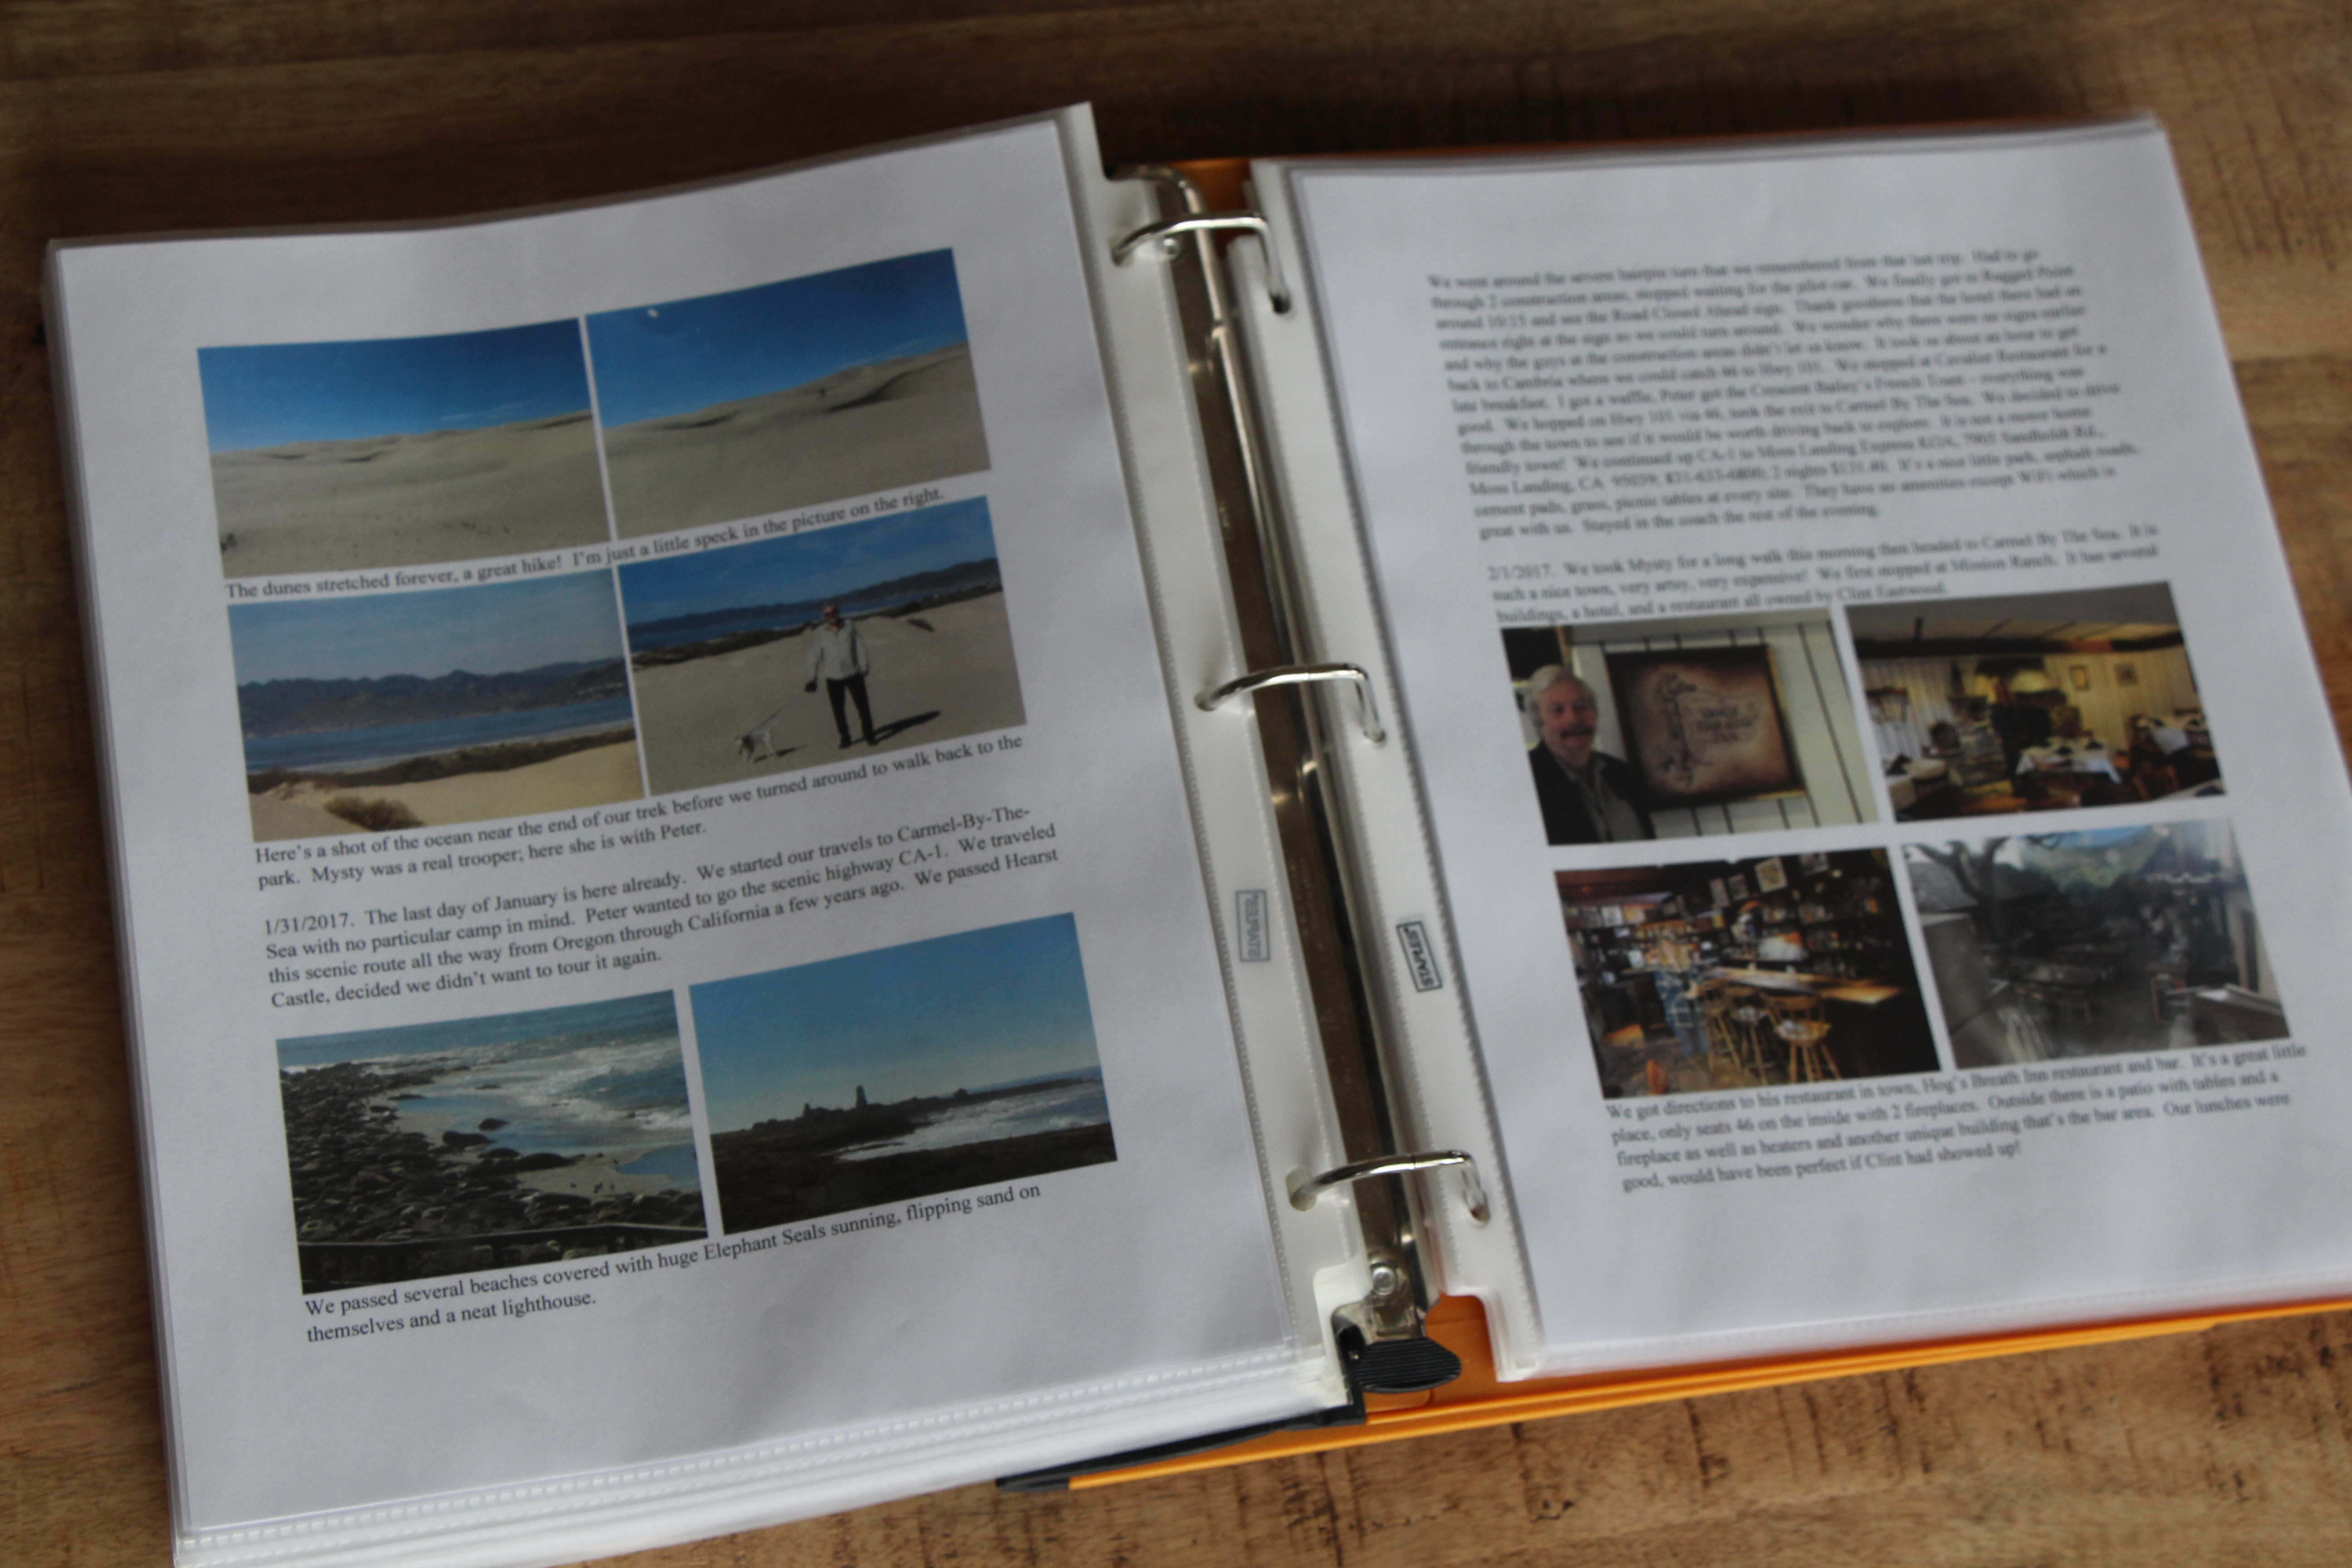 A log book with travel entries.